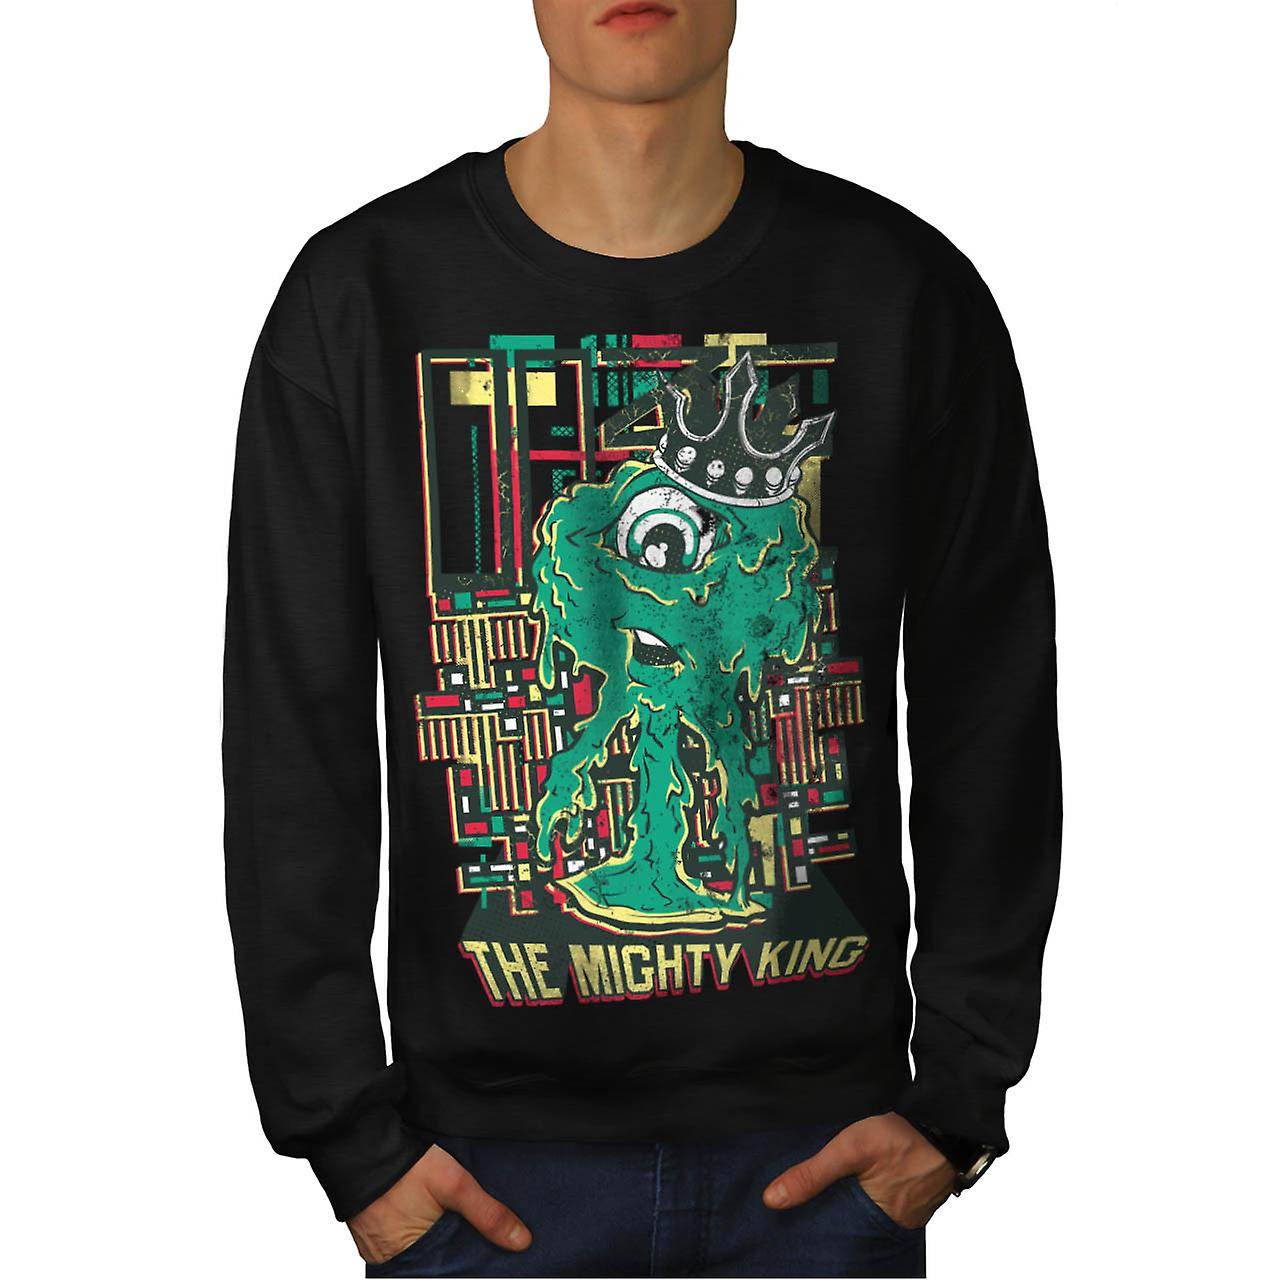 Mektige King Monster Cyclops livet menn svart Sweatshirt | Wellcoda